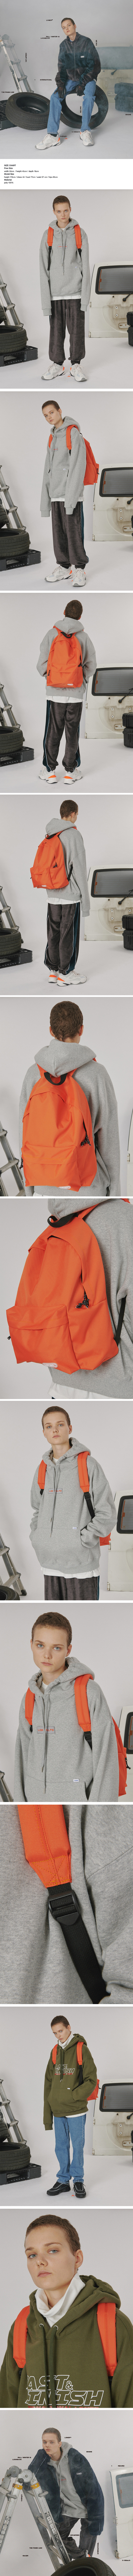 Rubber logo backpack_orange.jpg